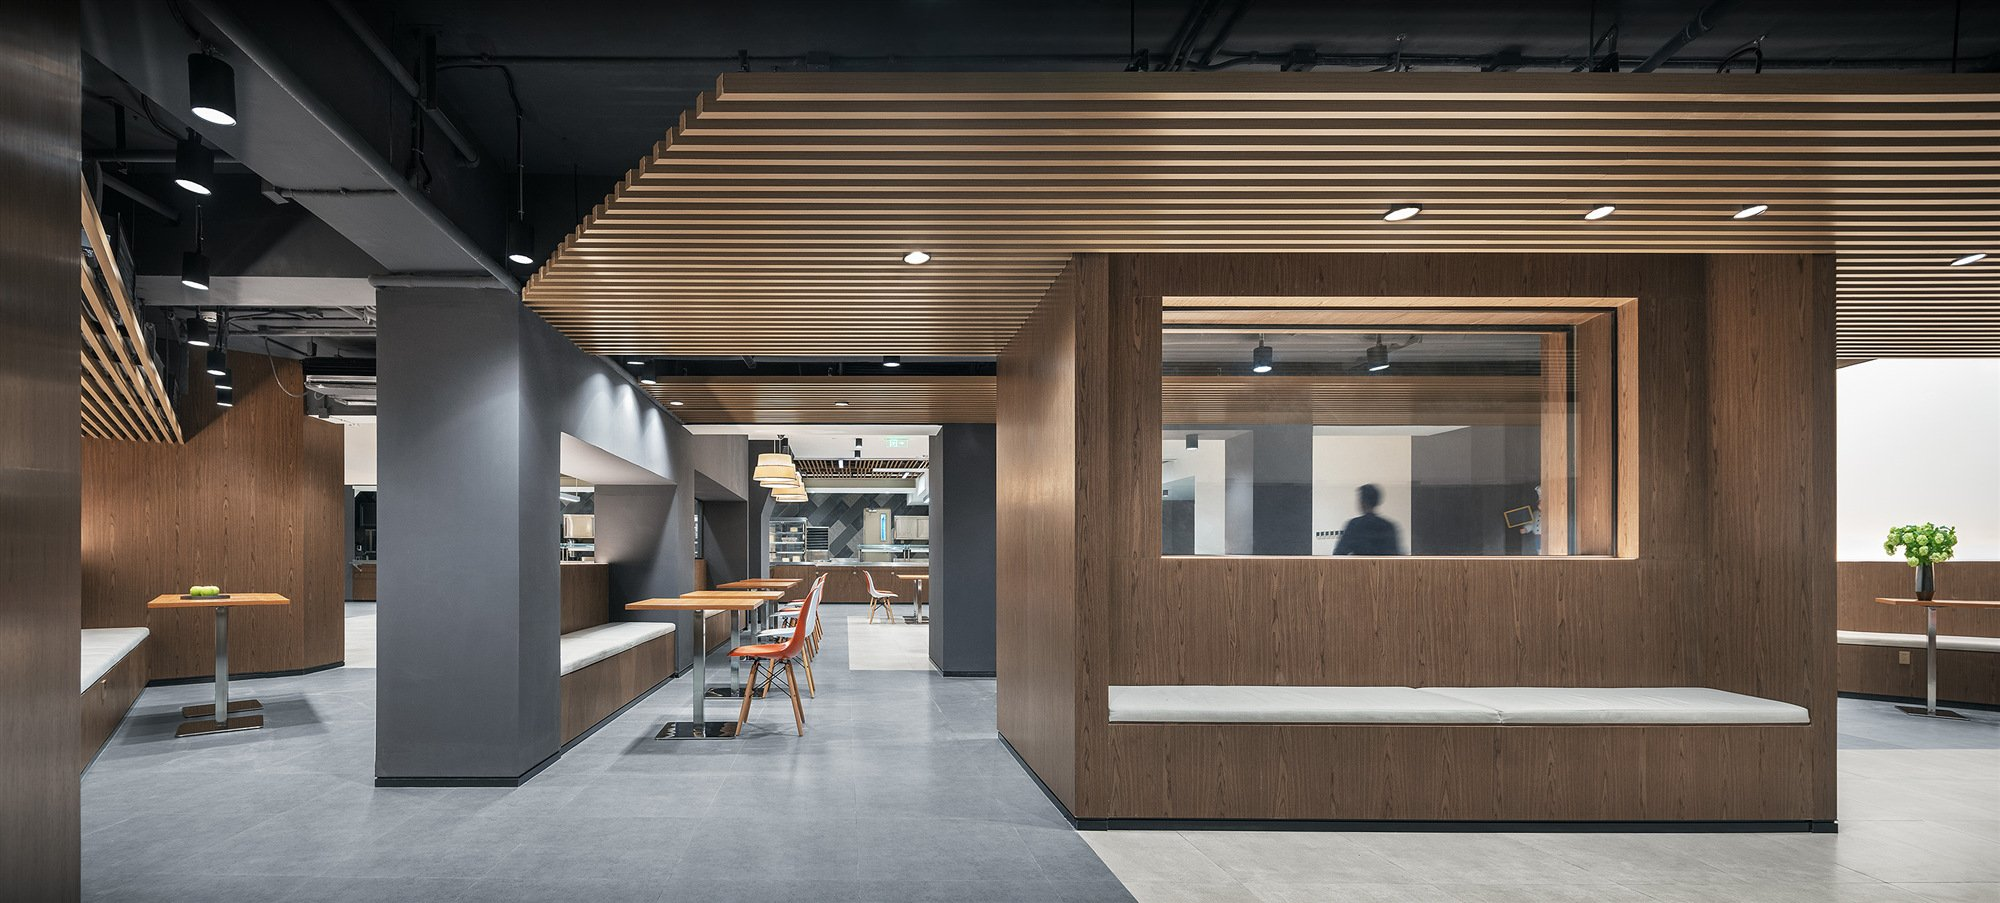 The staff canteen on the first floor BNJN design